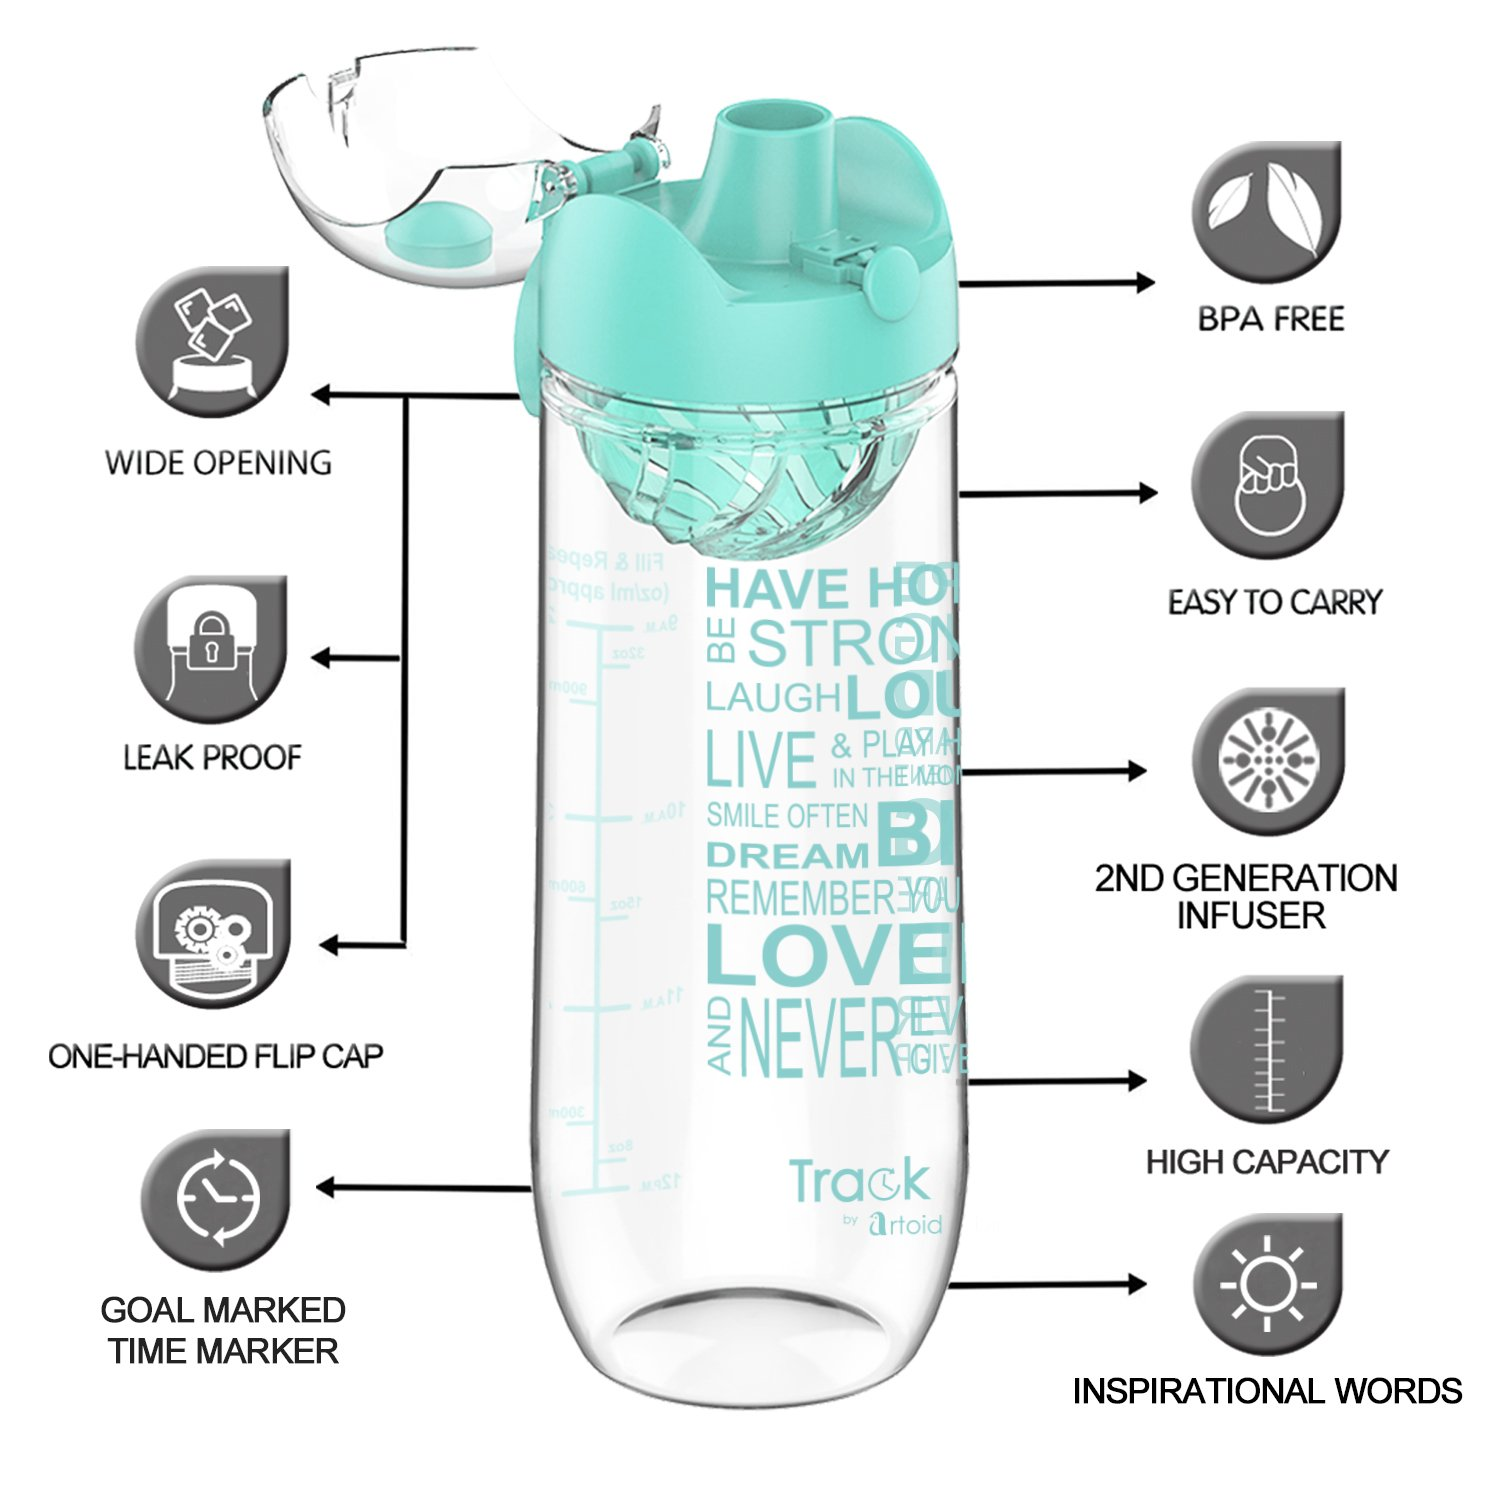 Artoid-Mode-1000ml-Inspirational-Motivational-Fruit-Infusion-Sports-Water-Bottle-with-Time-Markings-Innovative-Infuser-One-Click-Flip-Top-BPA-Free